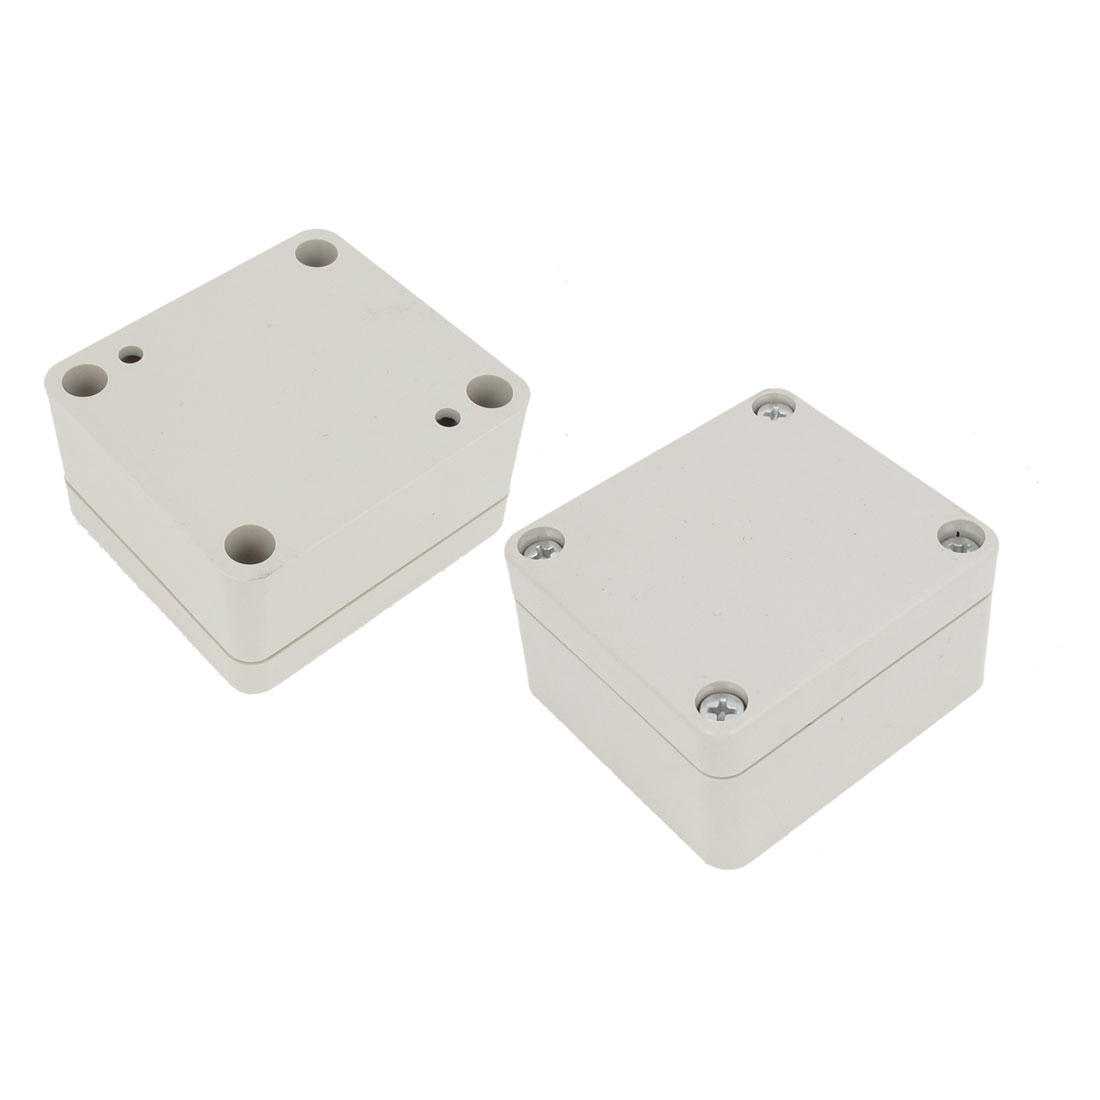 2 Pcs Plastic Mounted Power Protective Case Junction Box 63 x 57 x 35mm